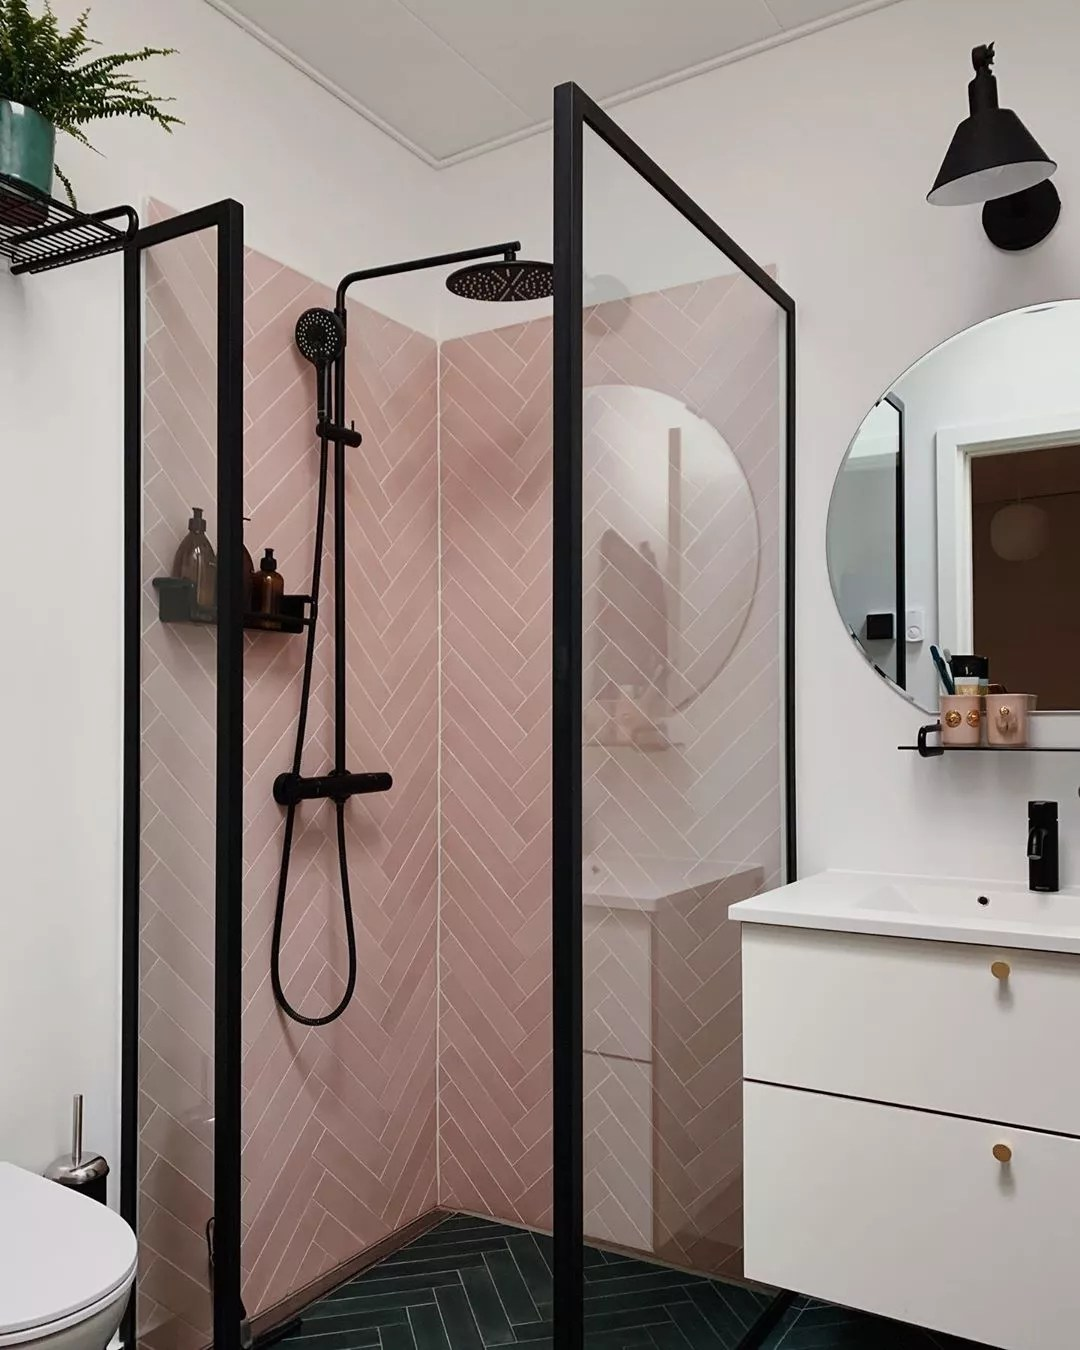 Modern bathroom with pink tile in shower. Photo by Instagram user @ditteblog